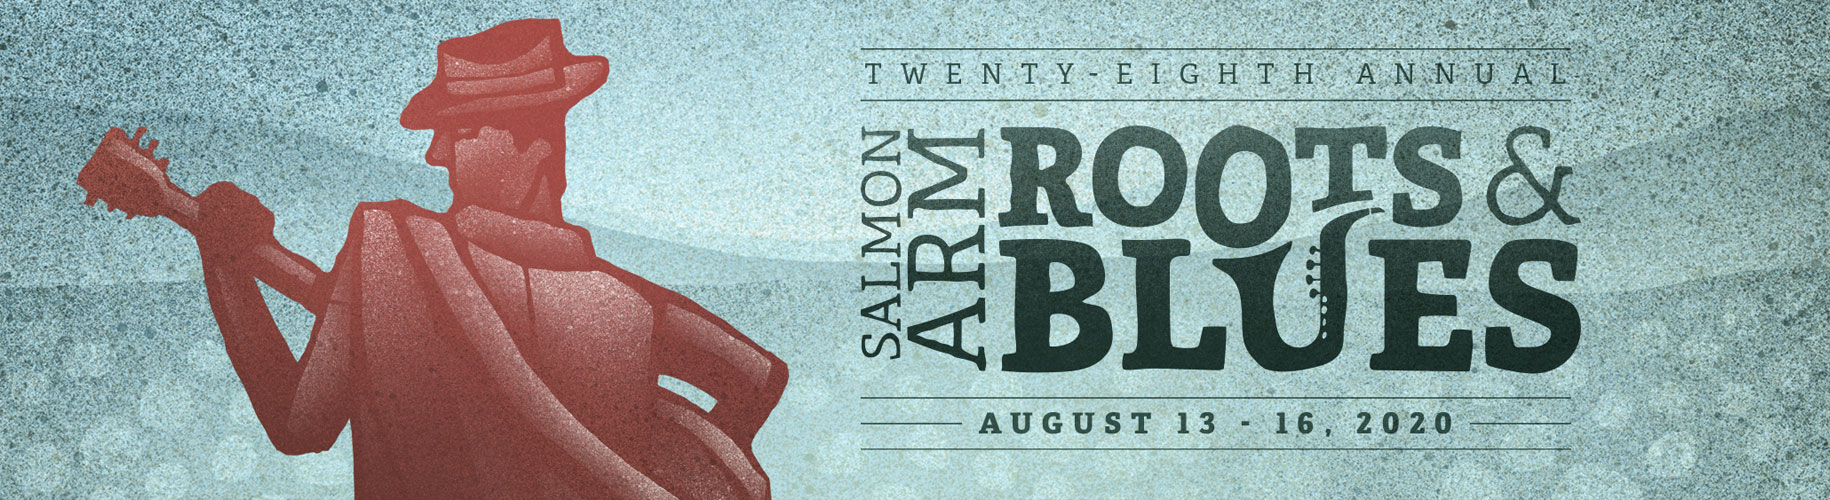 ROOTSandBLUES Festival in Salmon Arm, British Columbia